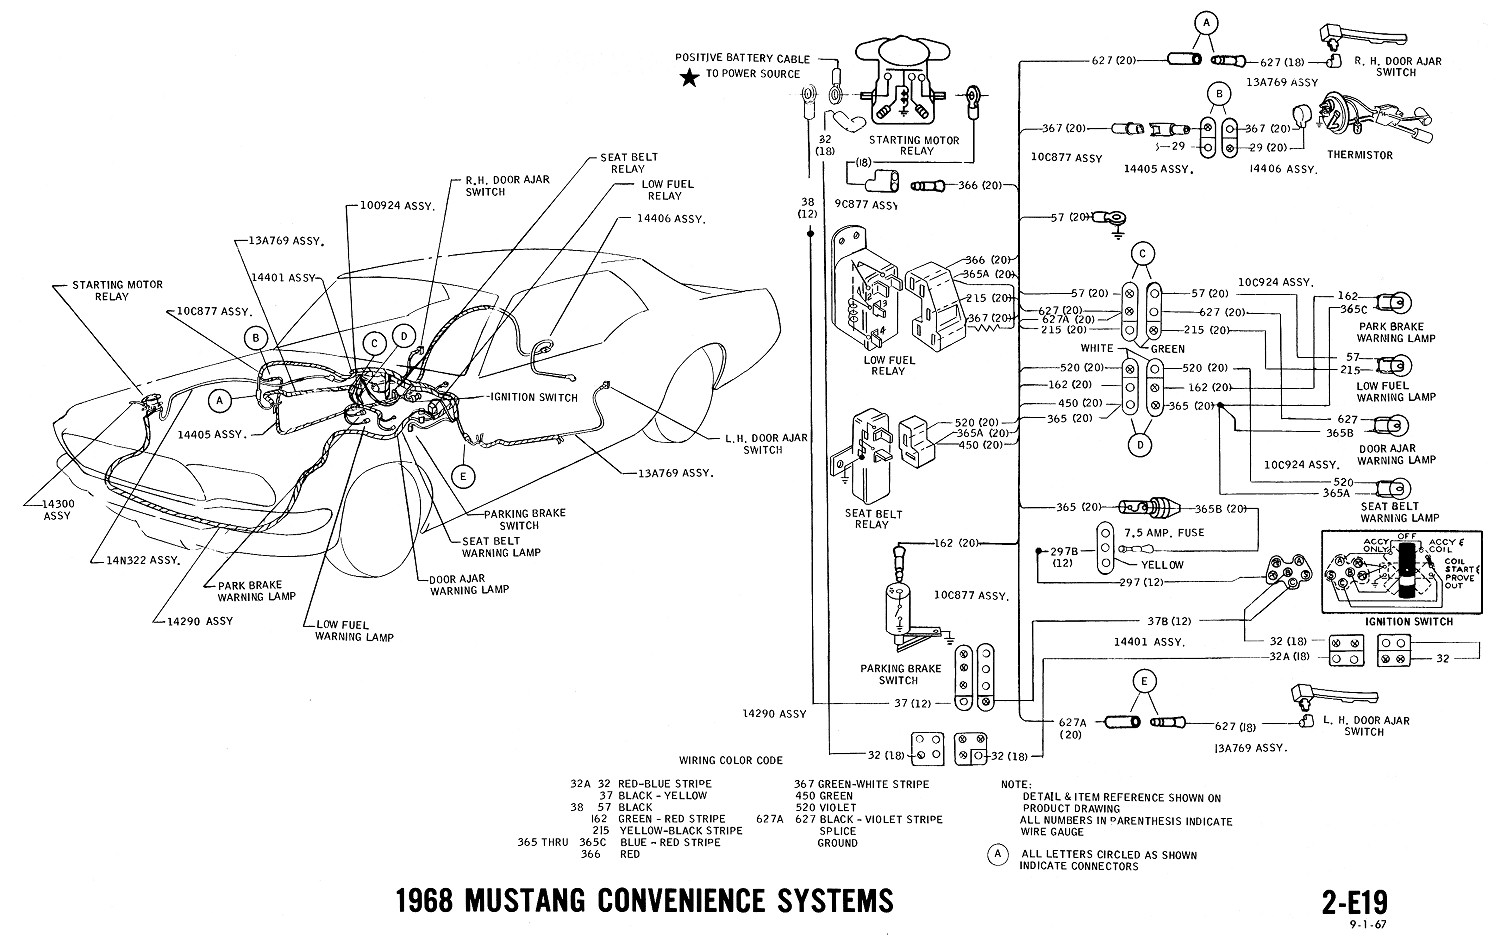 67 mustang column wiring electrical work wiring diagram \u2022 1969 mustang power steering hose diagram 1967 mustang console wiring diagram free vehicle wiring diagrams u2022 rh narfiyanstudio com 1967 mustang steering column wiring diagram 1967 mustang column